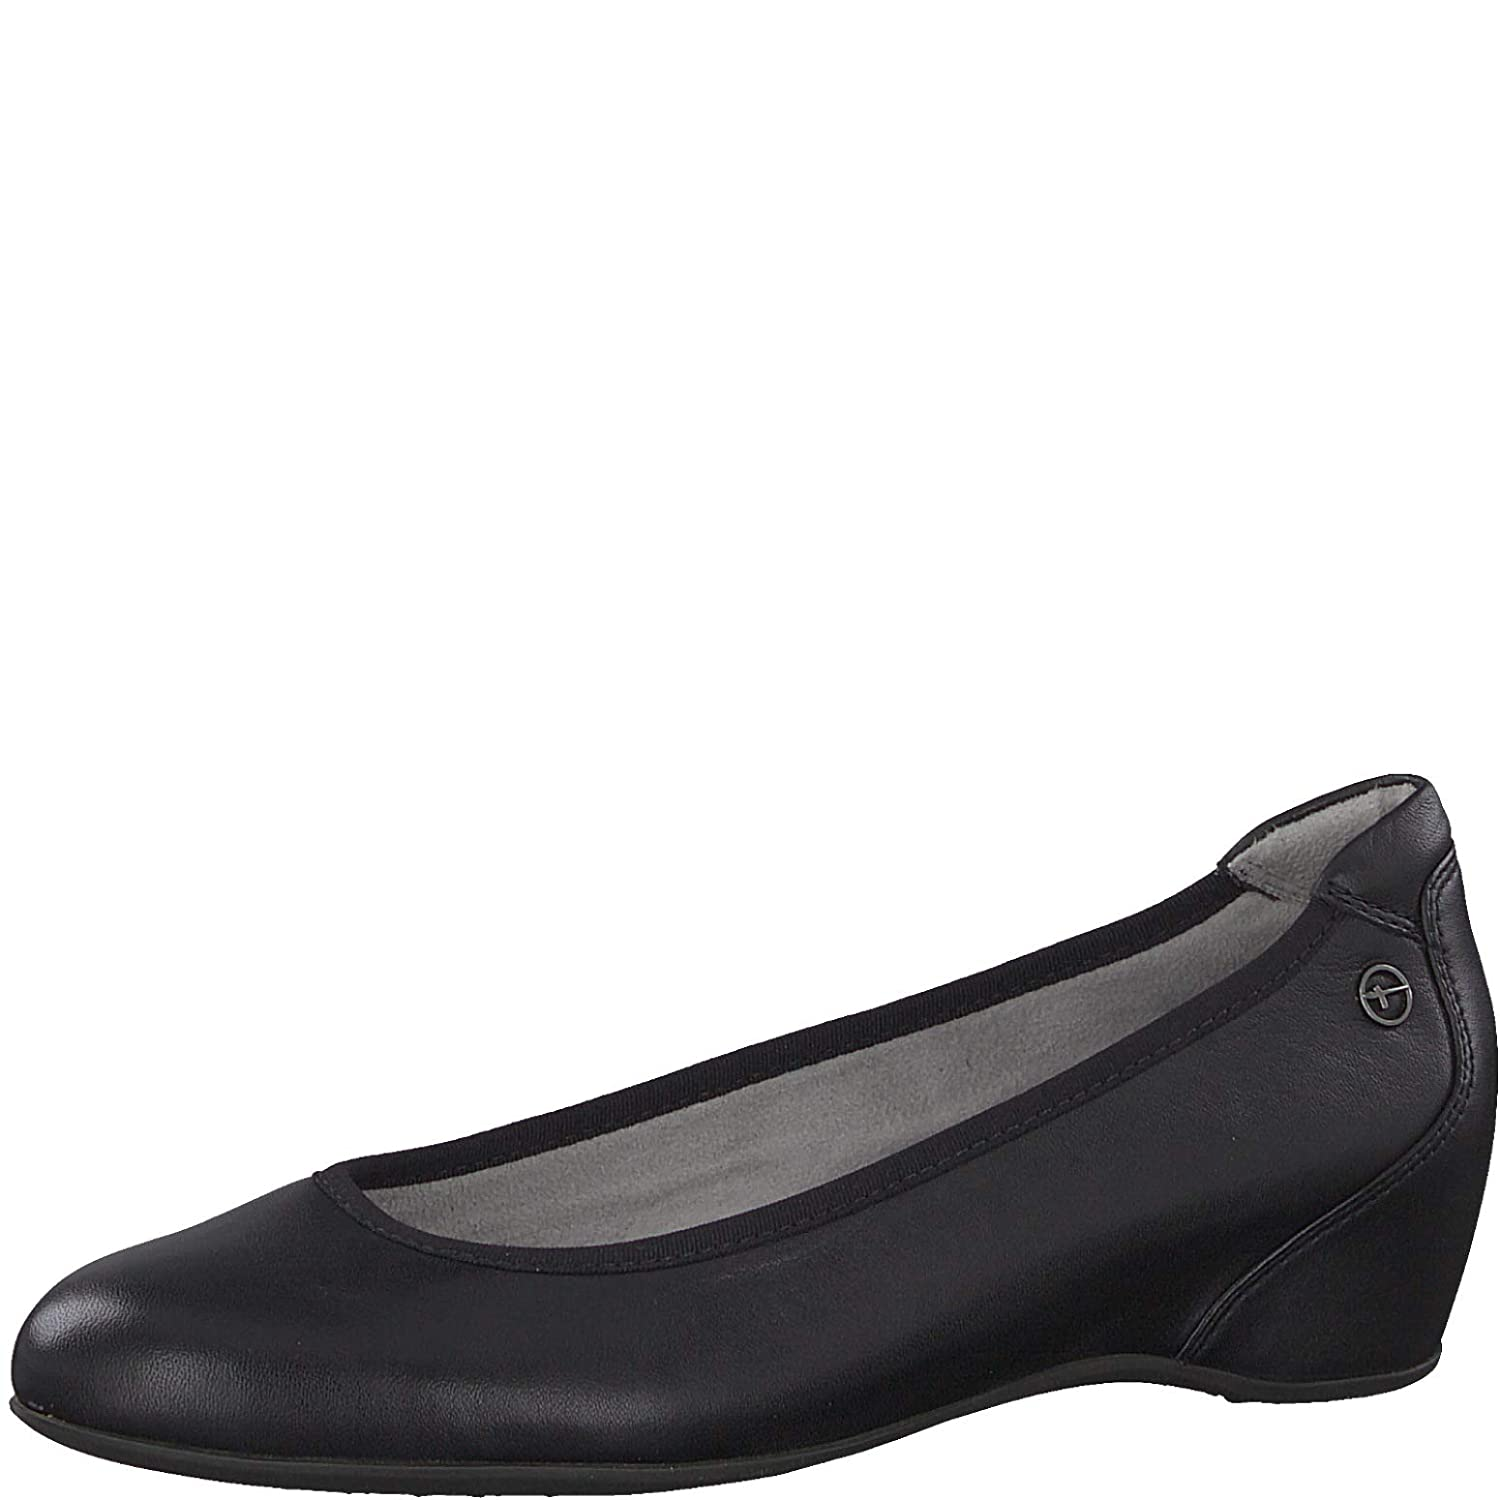 schwarz Leather Tamaris Damen 22421 Pumps